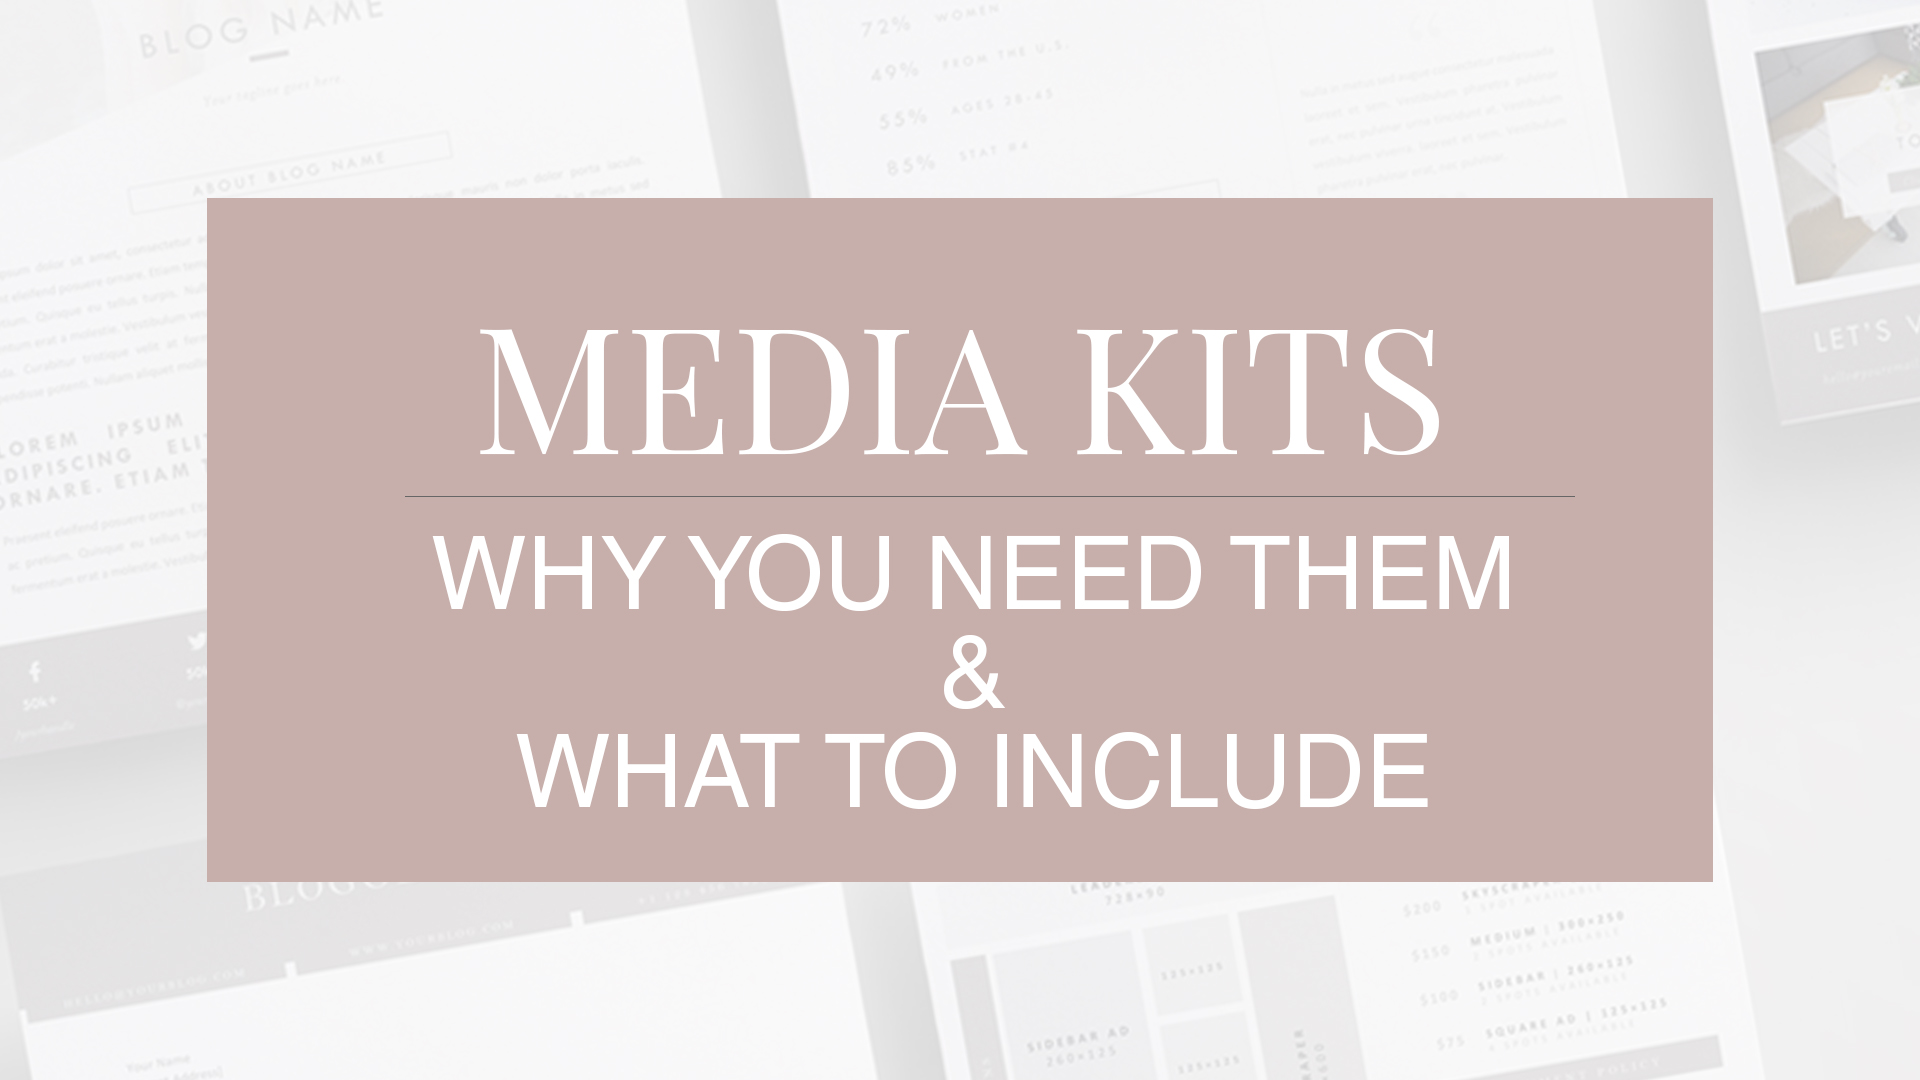 How to create a media kit for your business